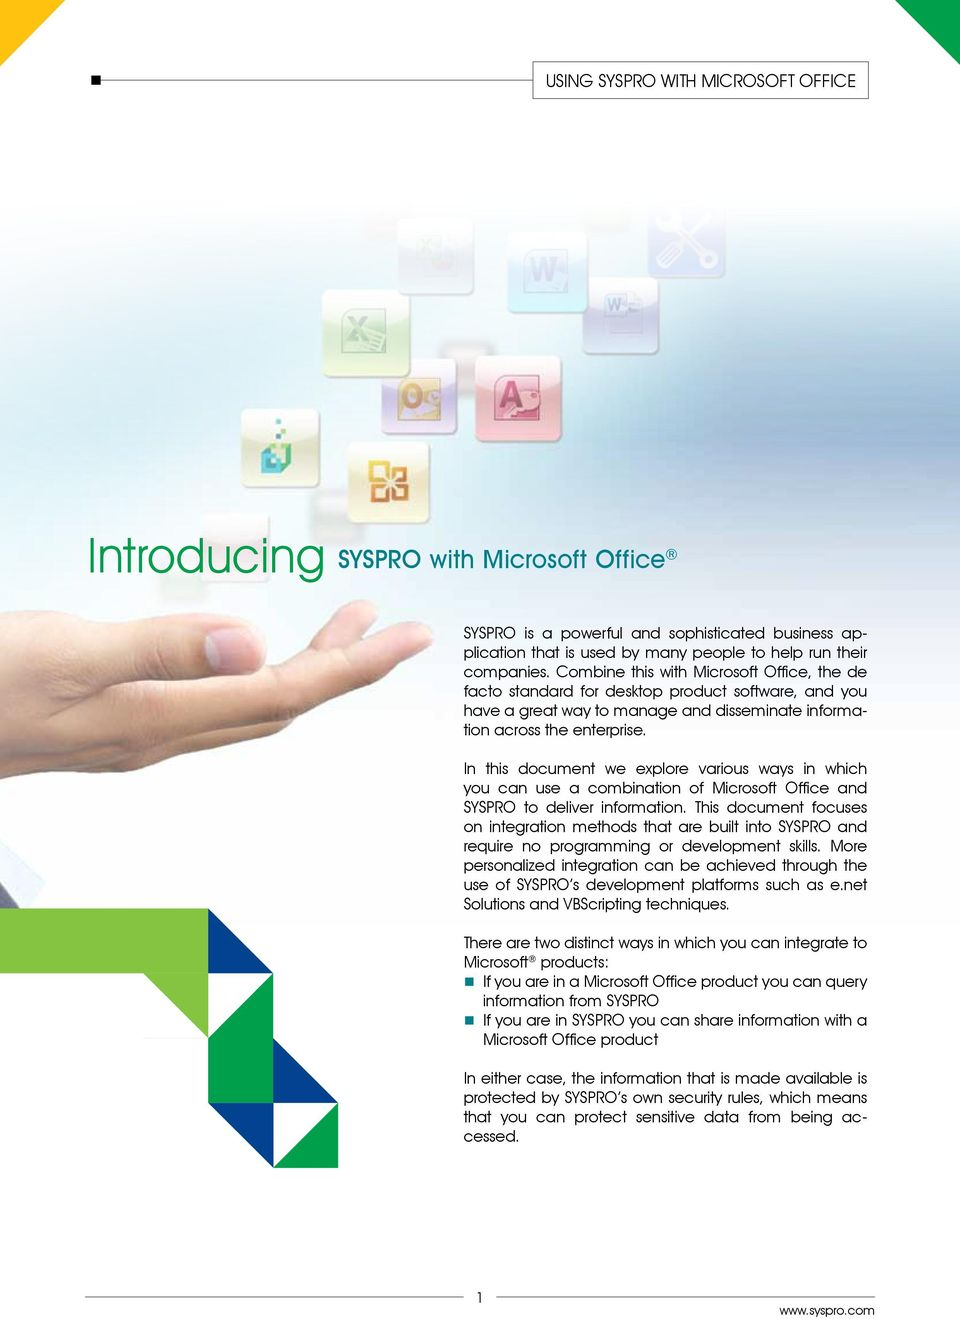 In this document we explore various ways in which you can use a combination of Microsoft Office and SYSPRO to deliver information.